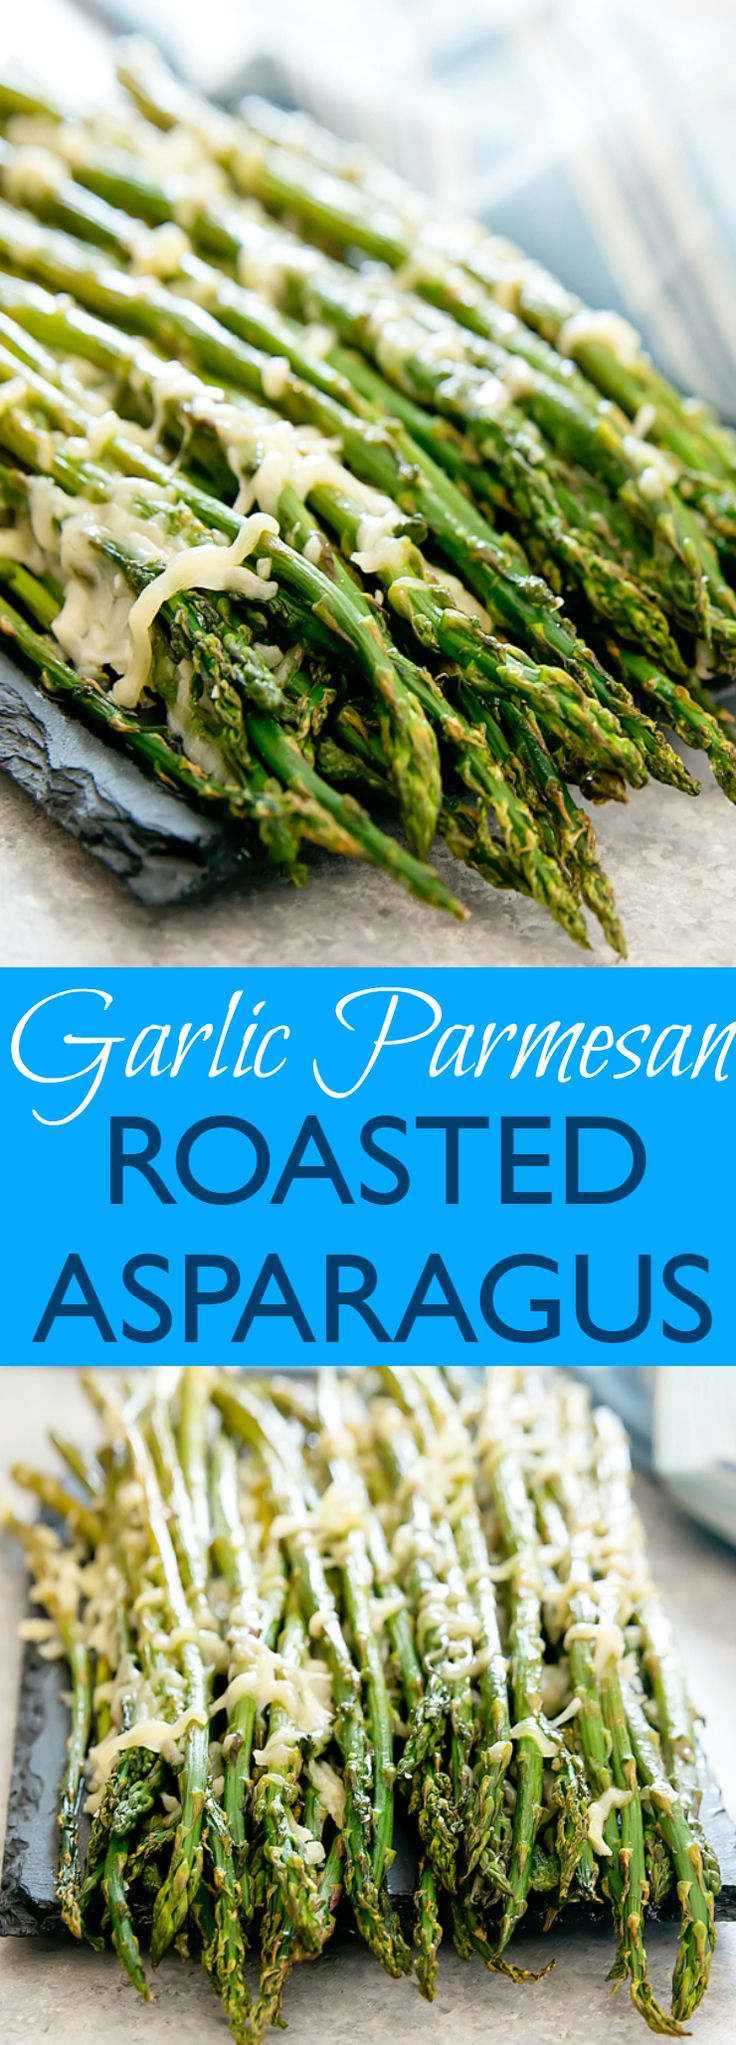 Garlic Parmesan Roasted Asparagus. An easy side dish with just four ingredients and ready in 15 minutes.